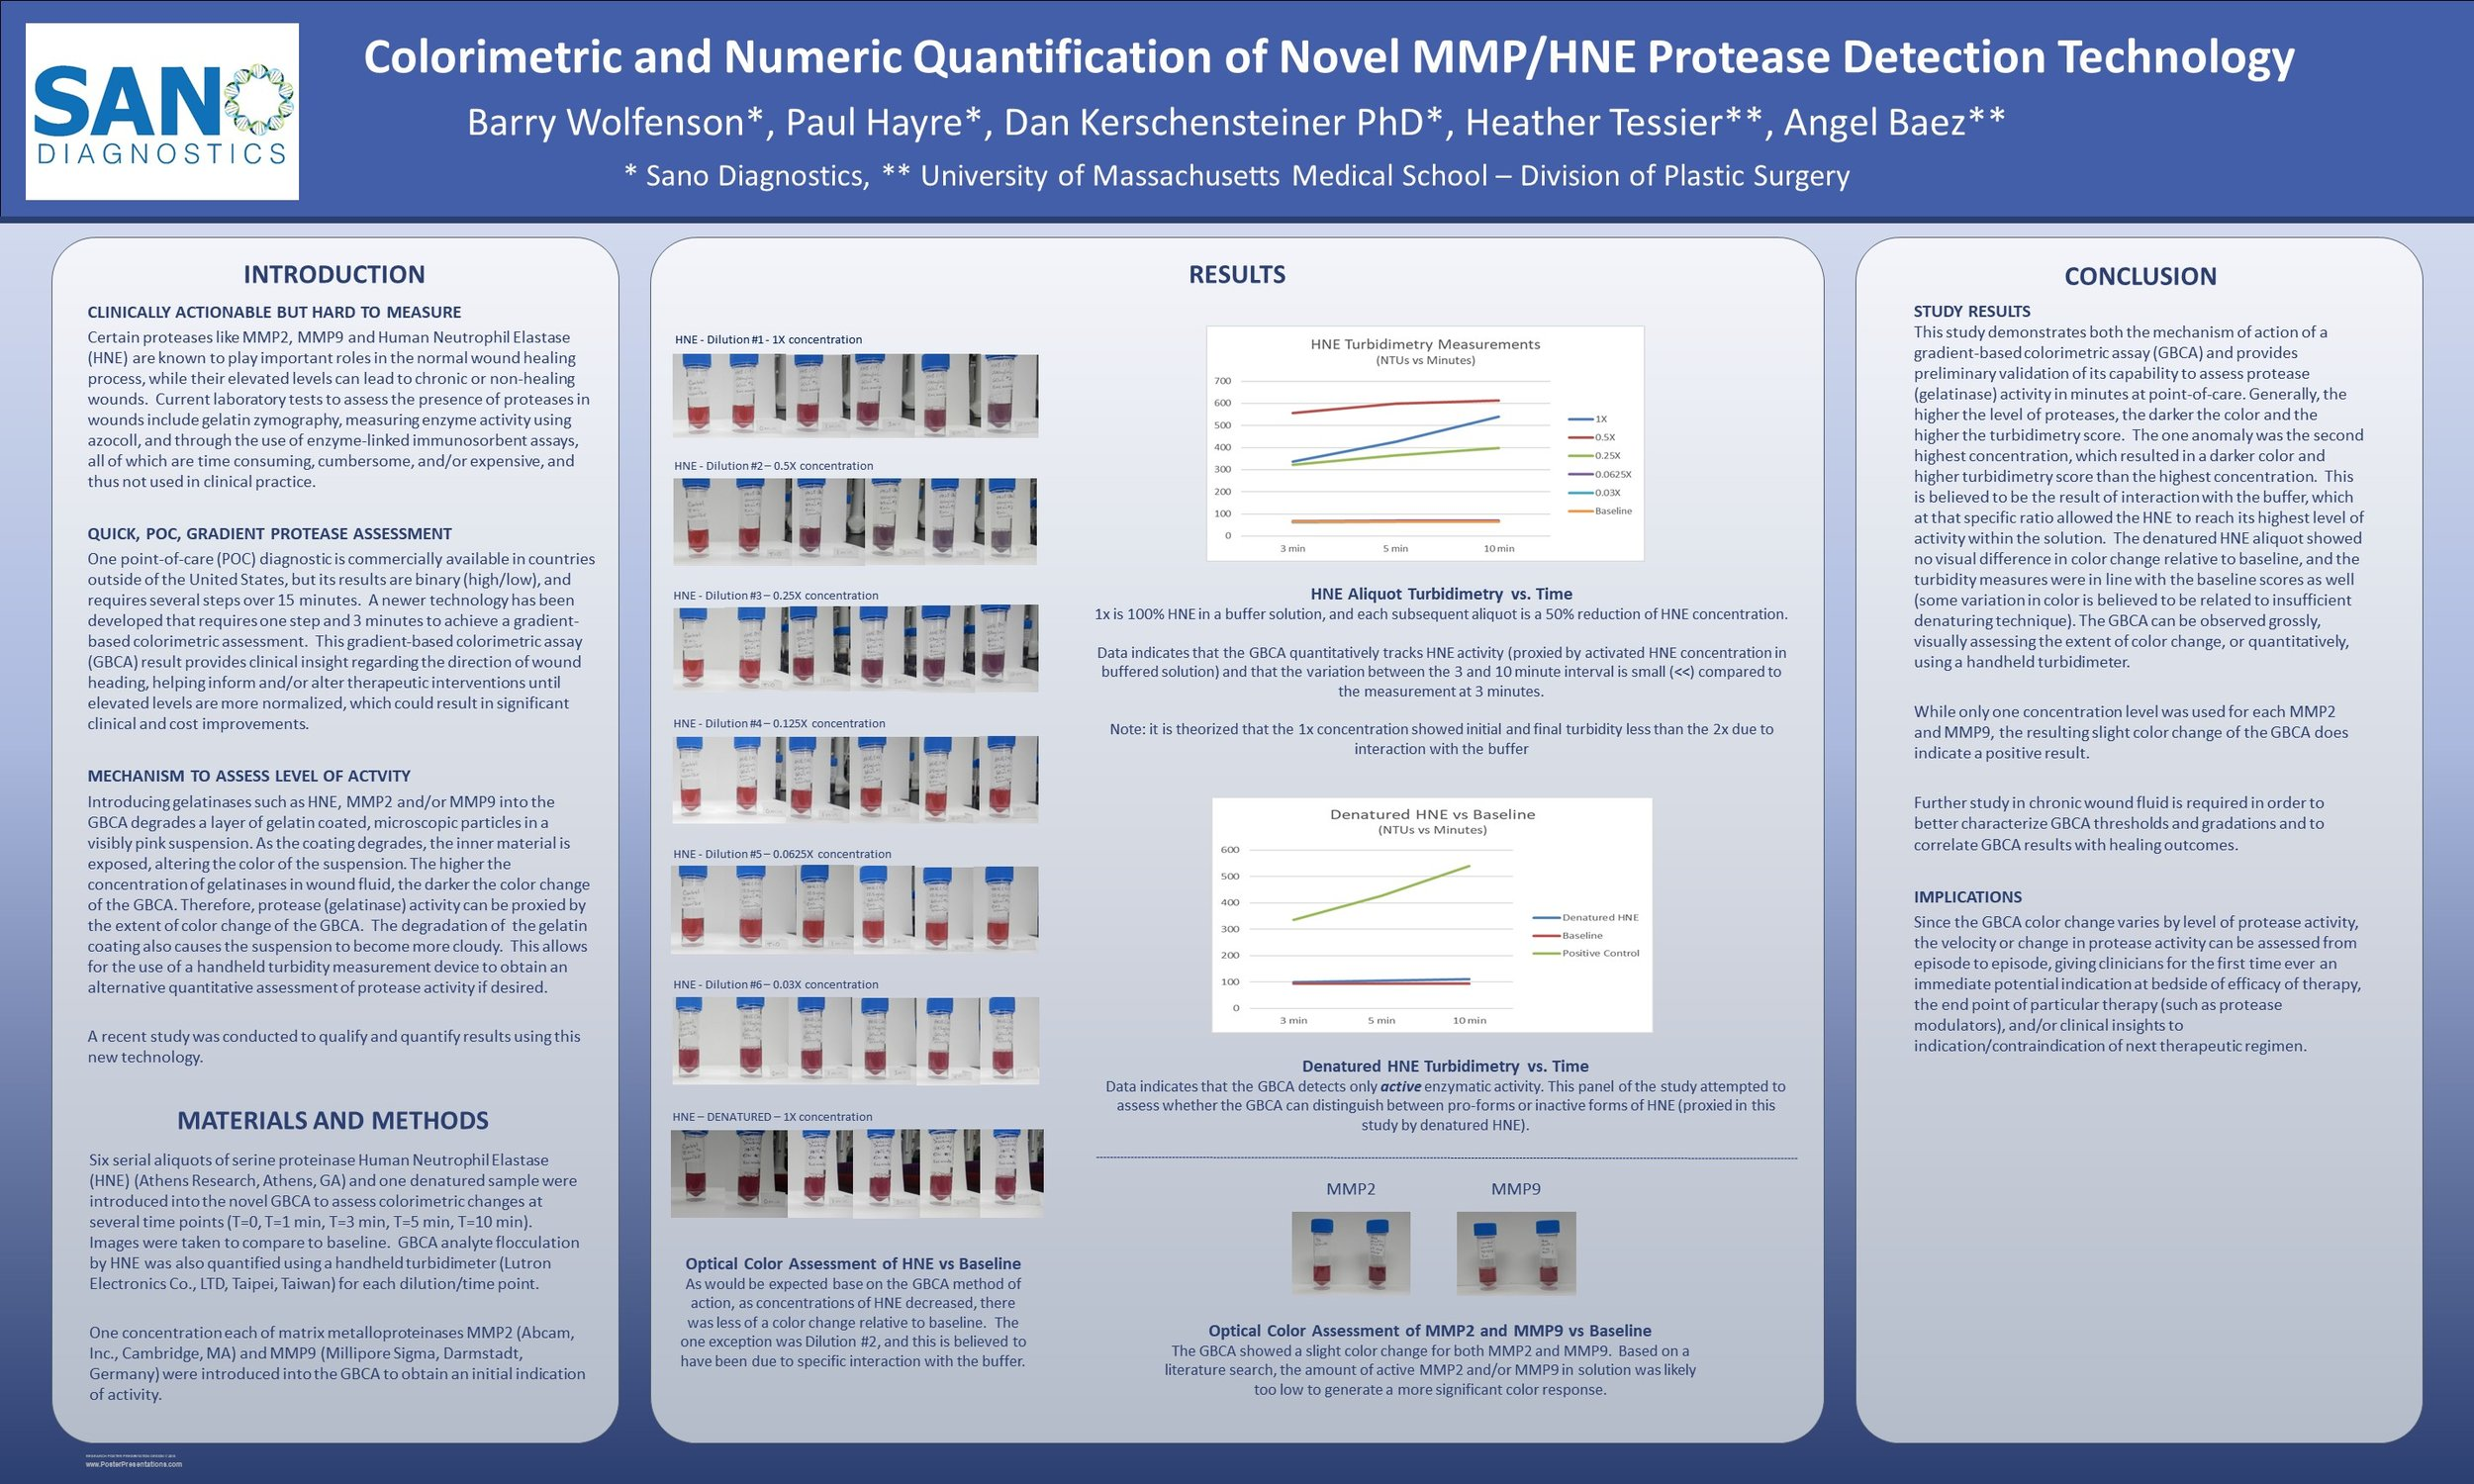 Colorimetric and Numeric Quantification of Novel MMP-HNE Protease Enzyme Detection Technology - SAWC Spring 2018.final.jpg